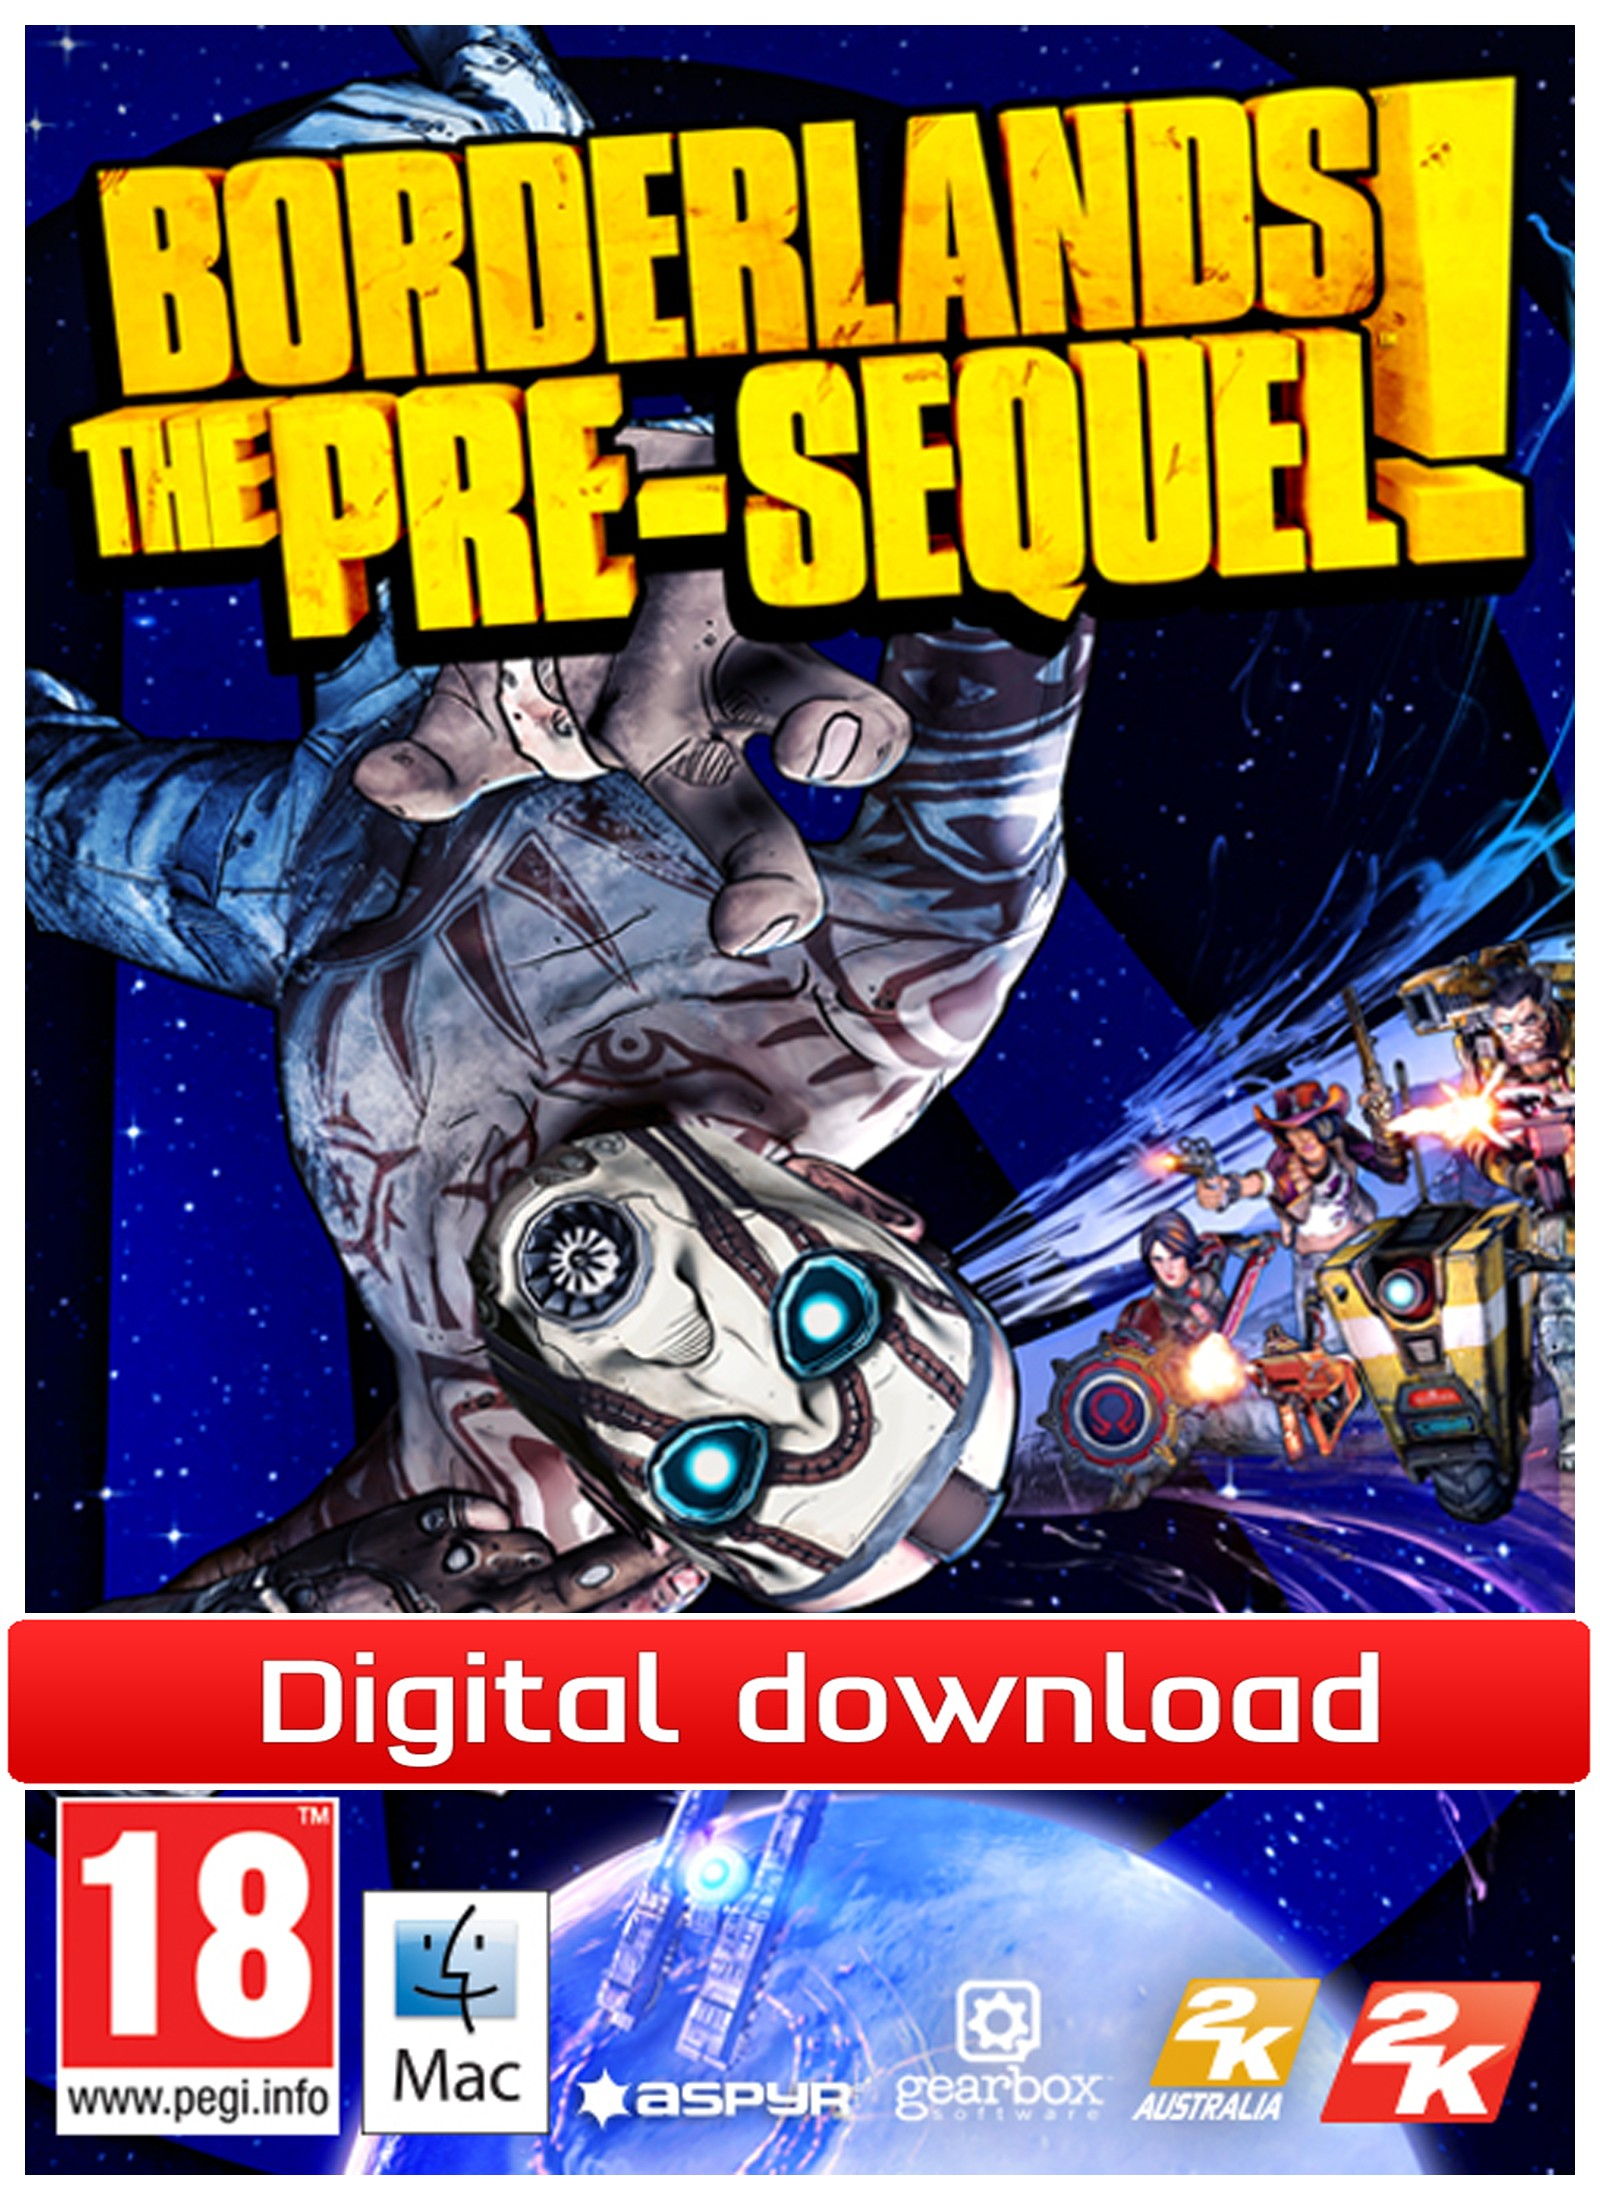 36359 : Borderlands: The Pre-Sequel (Mac nedlastning)